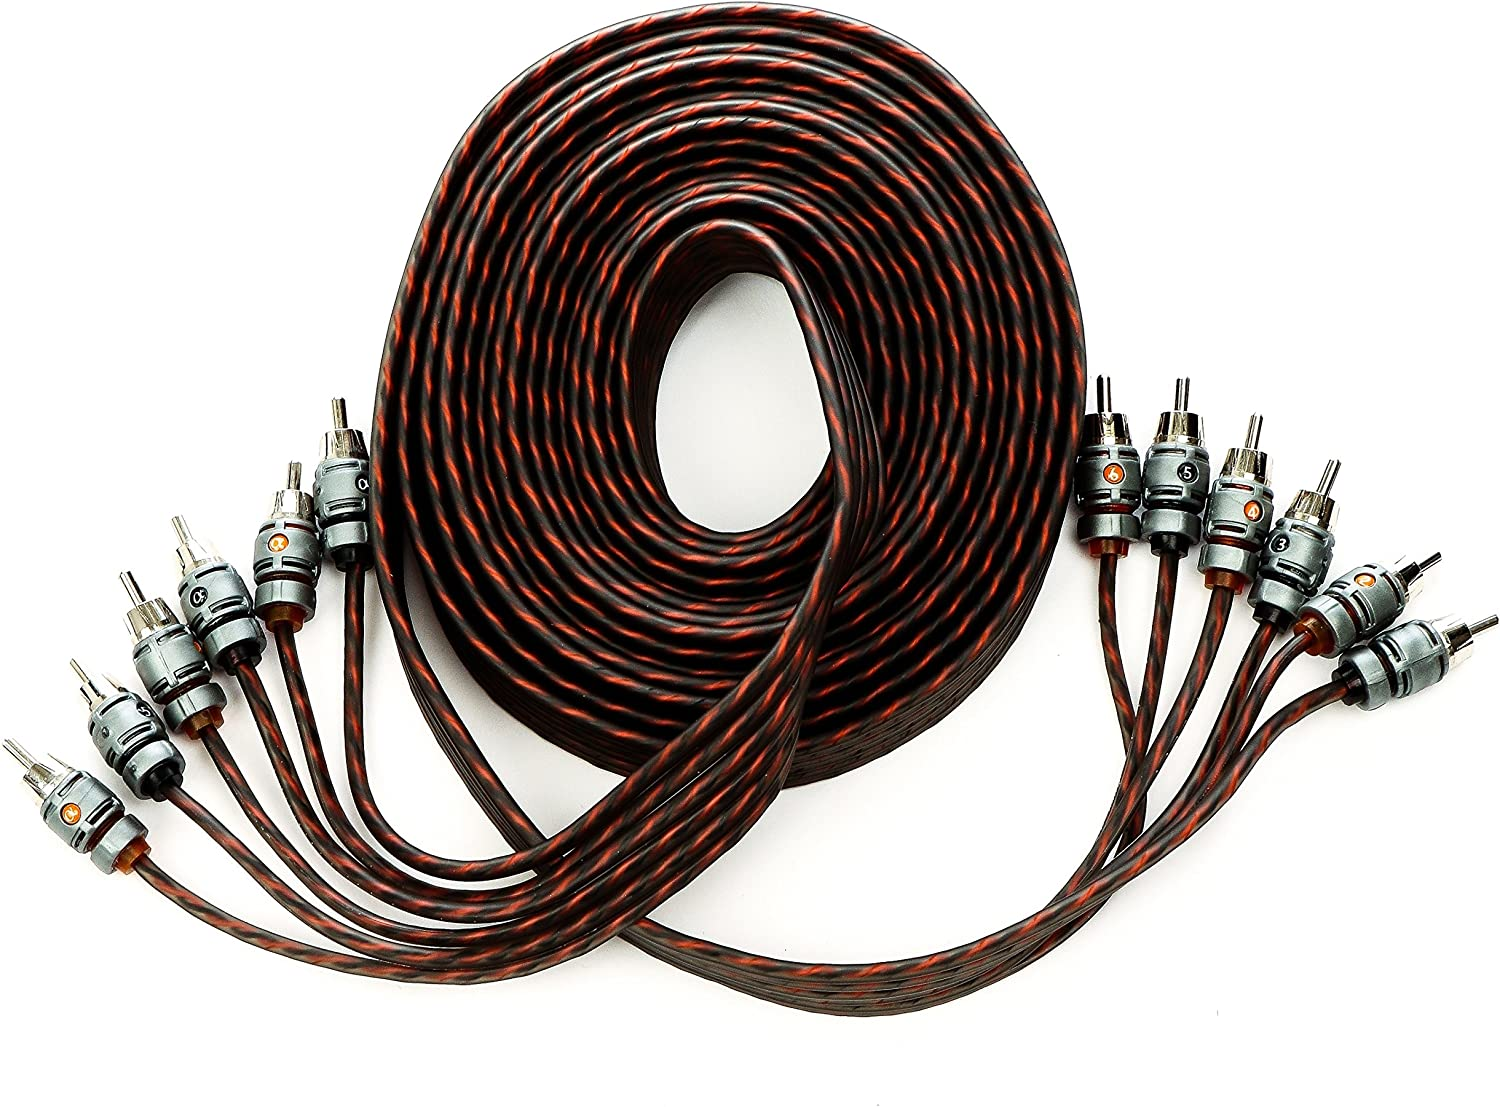 Alphasonik 17 Feet Premium 6 Channel Hyper-Flex RCA Interconnect Signal Patch Audio Cable with X-Radial Twist Wire Technology 100% Oxygen Free Copper Element Certified Multiple Applications FLEX-R66 91QGGTyEeWL